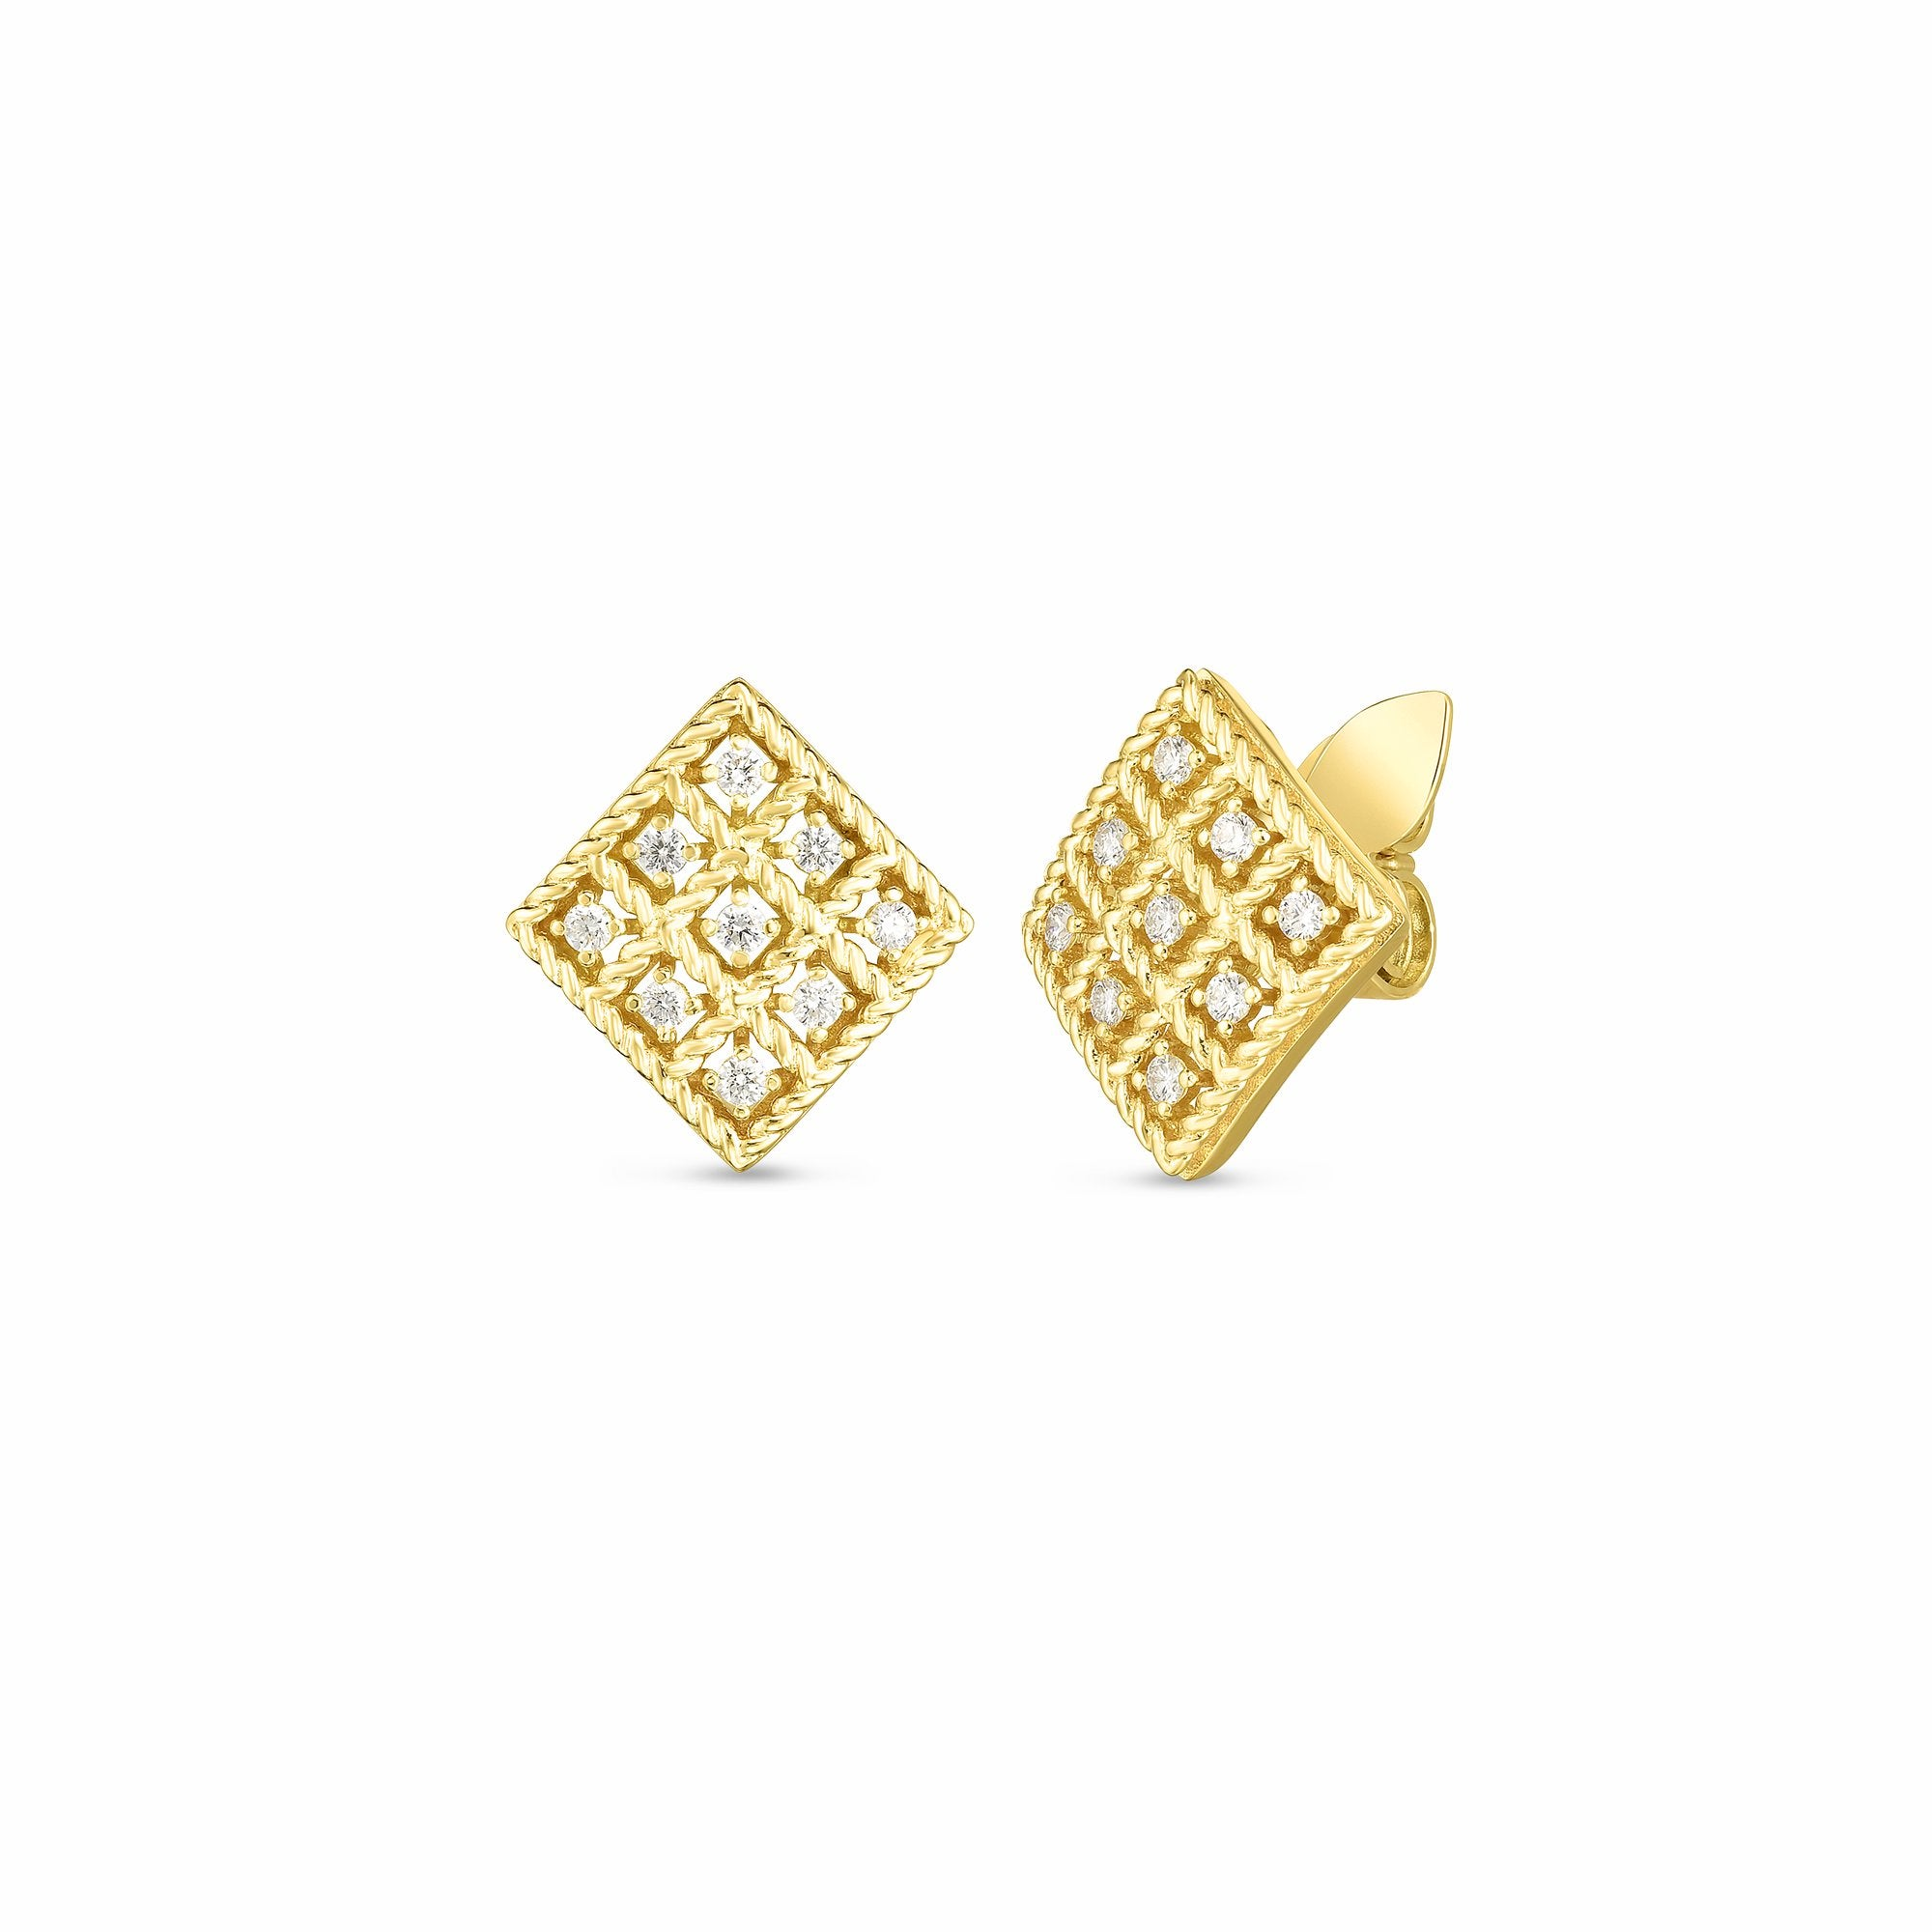 18K YELLOW GOLD & DIAMOND BYZANTINE BAROCCO SMALL SQUARE STUD EARRING